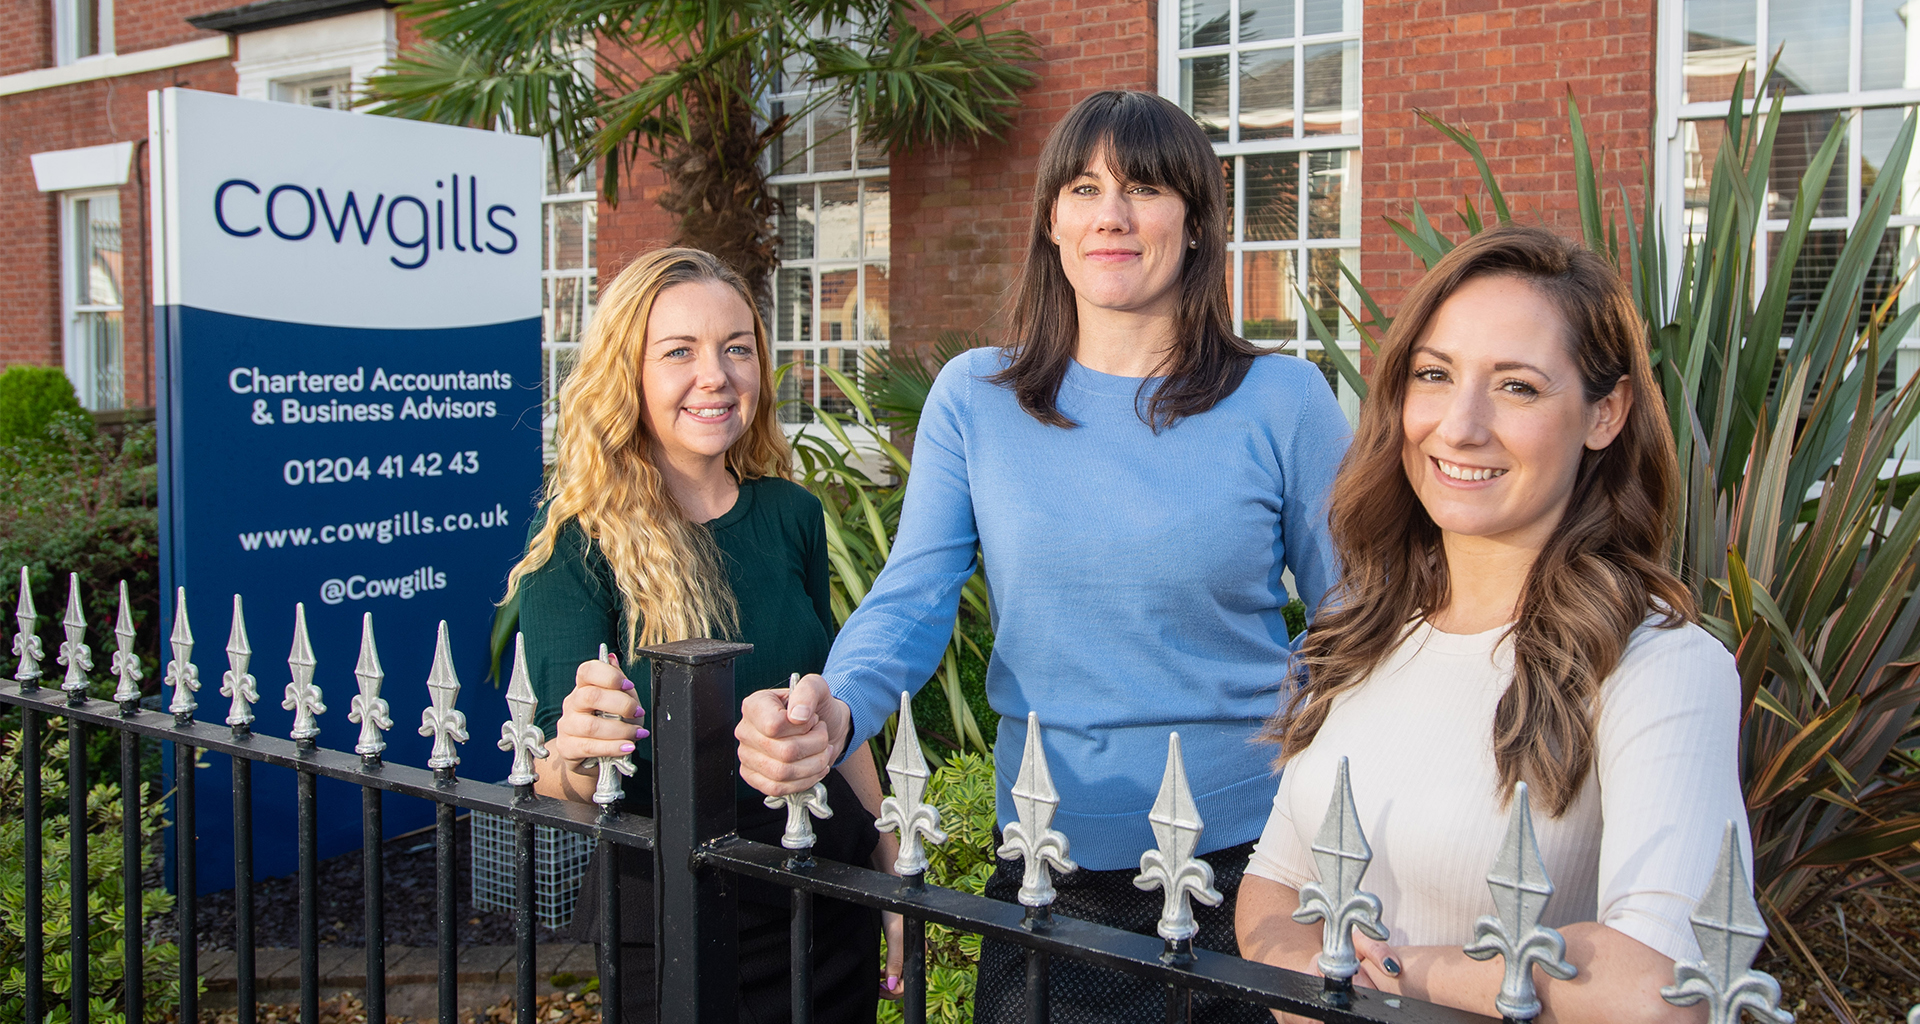 Cowgills tax team expands with new hires